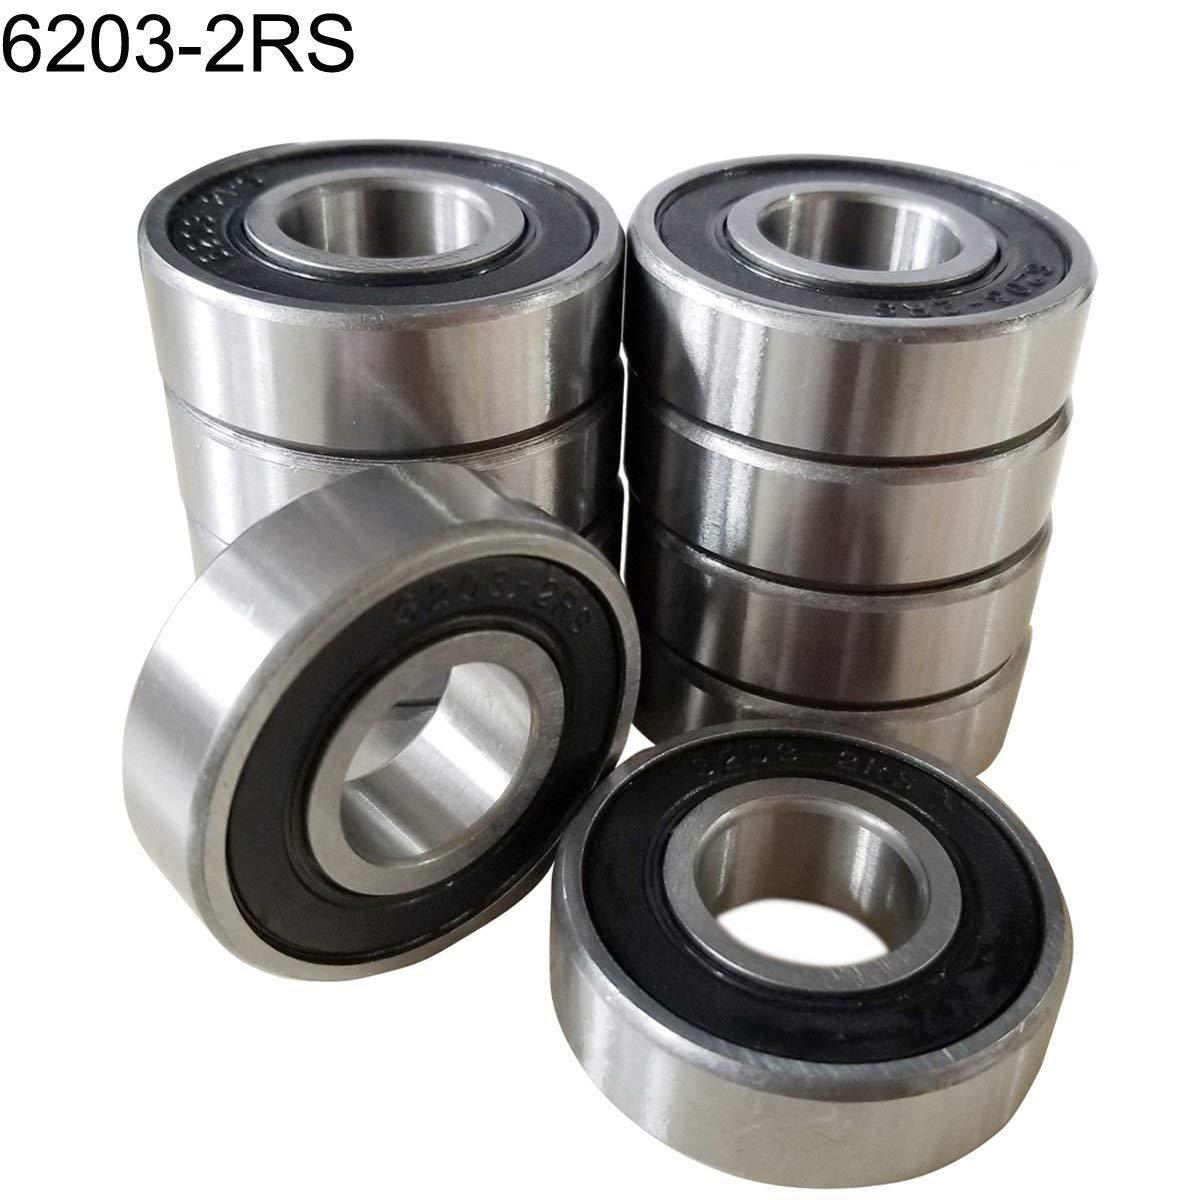 Deep Groove Ball Bearings Double Seal and Pre-Lubricated Bearing Steel M-jump 10 PCS 6203-2RS Sealed Bearings 17x40x12mm Ball Bearing